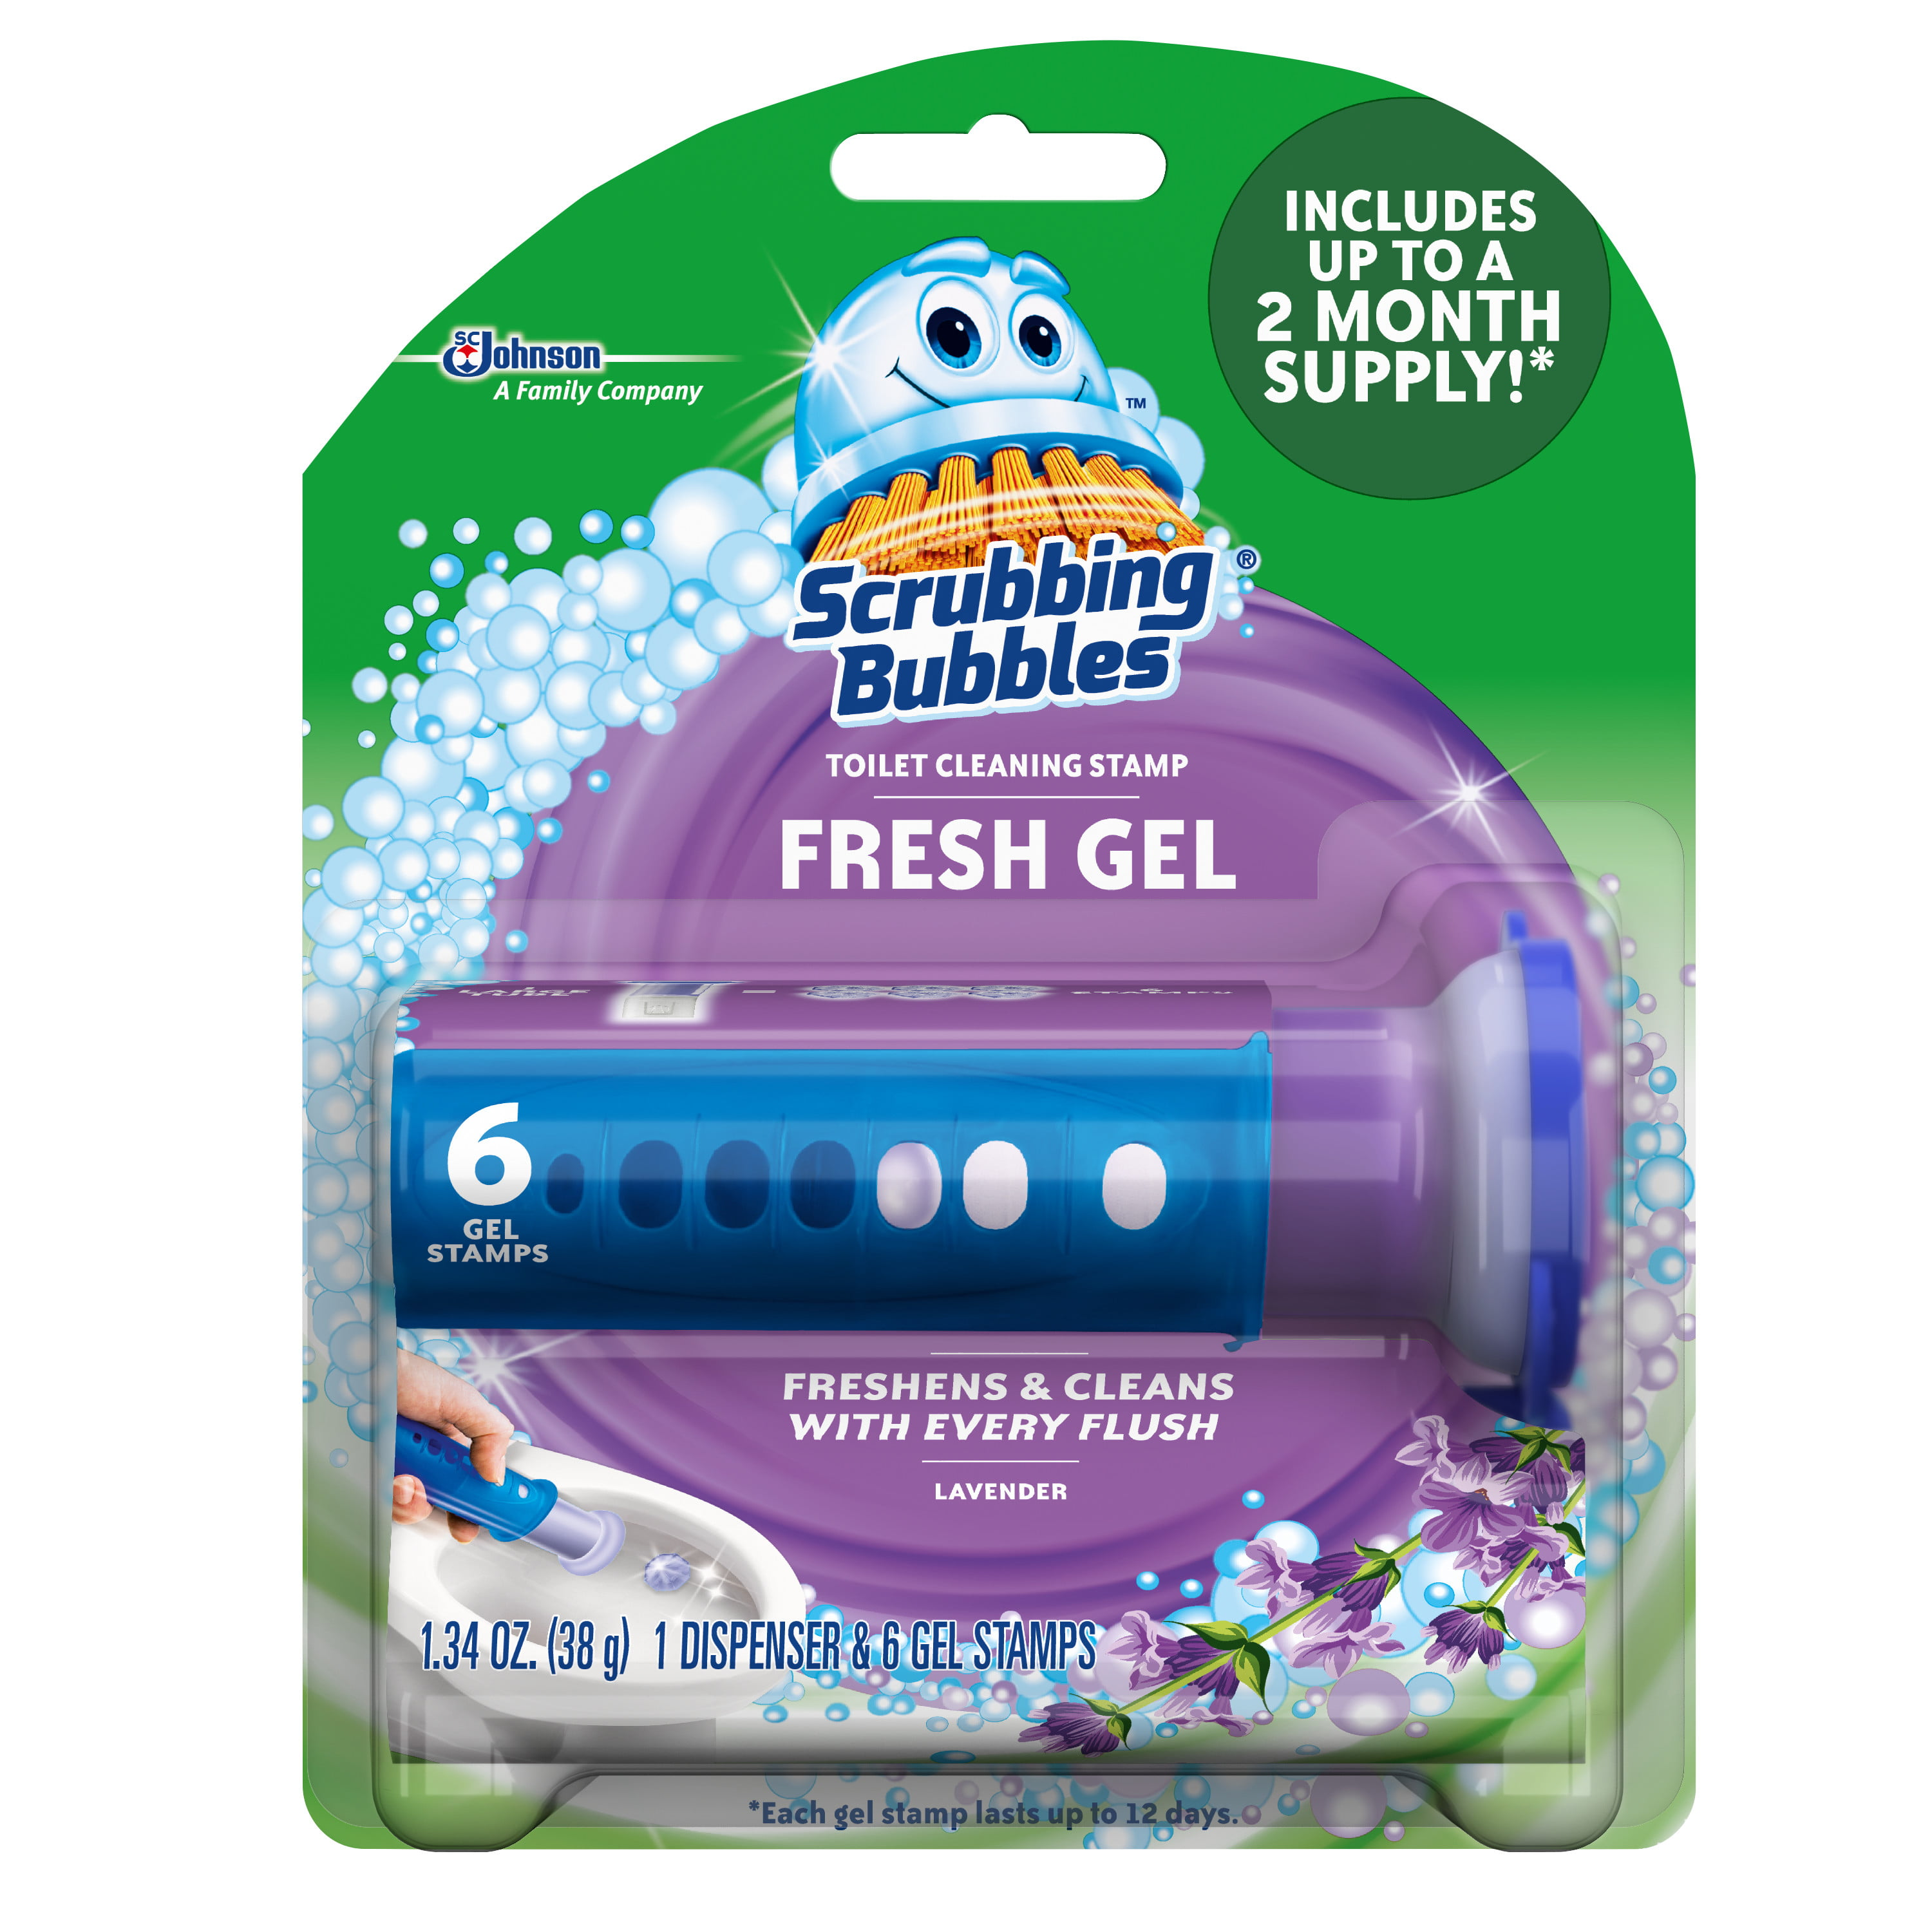 scrubbing bubbles gel stamp review